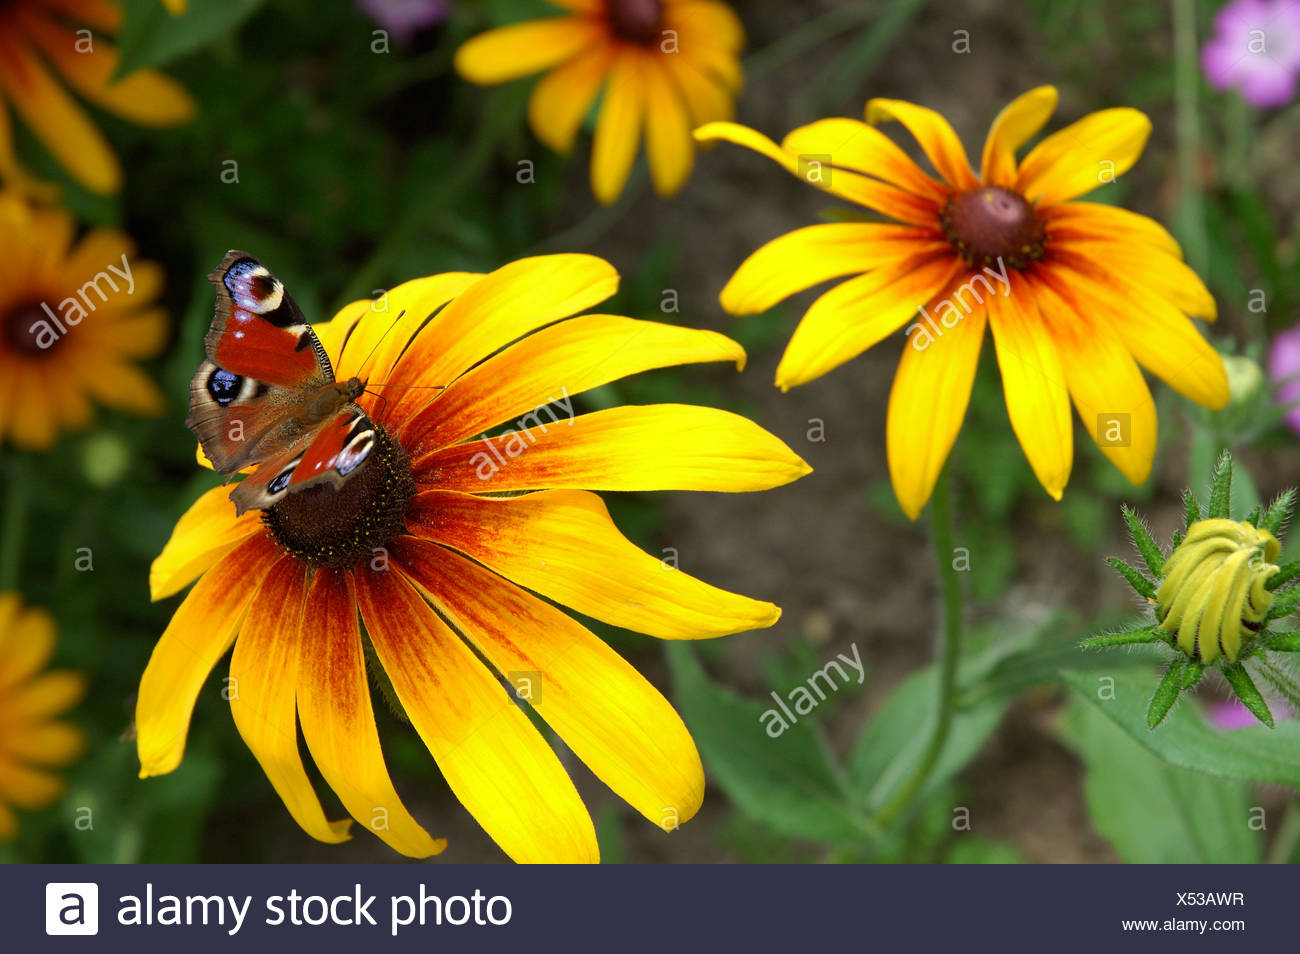 A butterfly rests on the anther of one of the yellow petaled flowers peacock butterfly - Stock Image